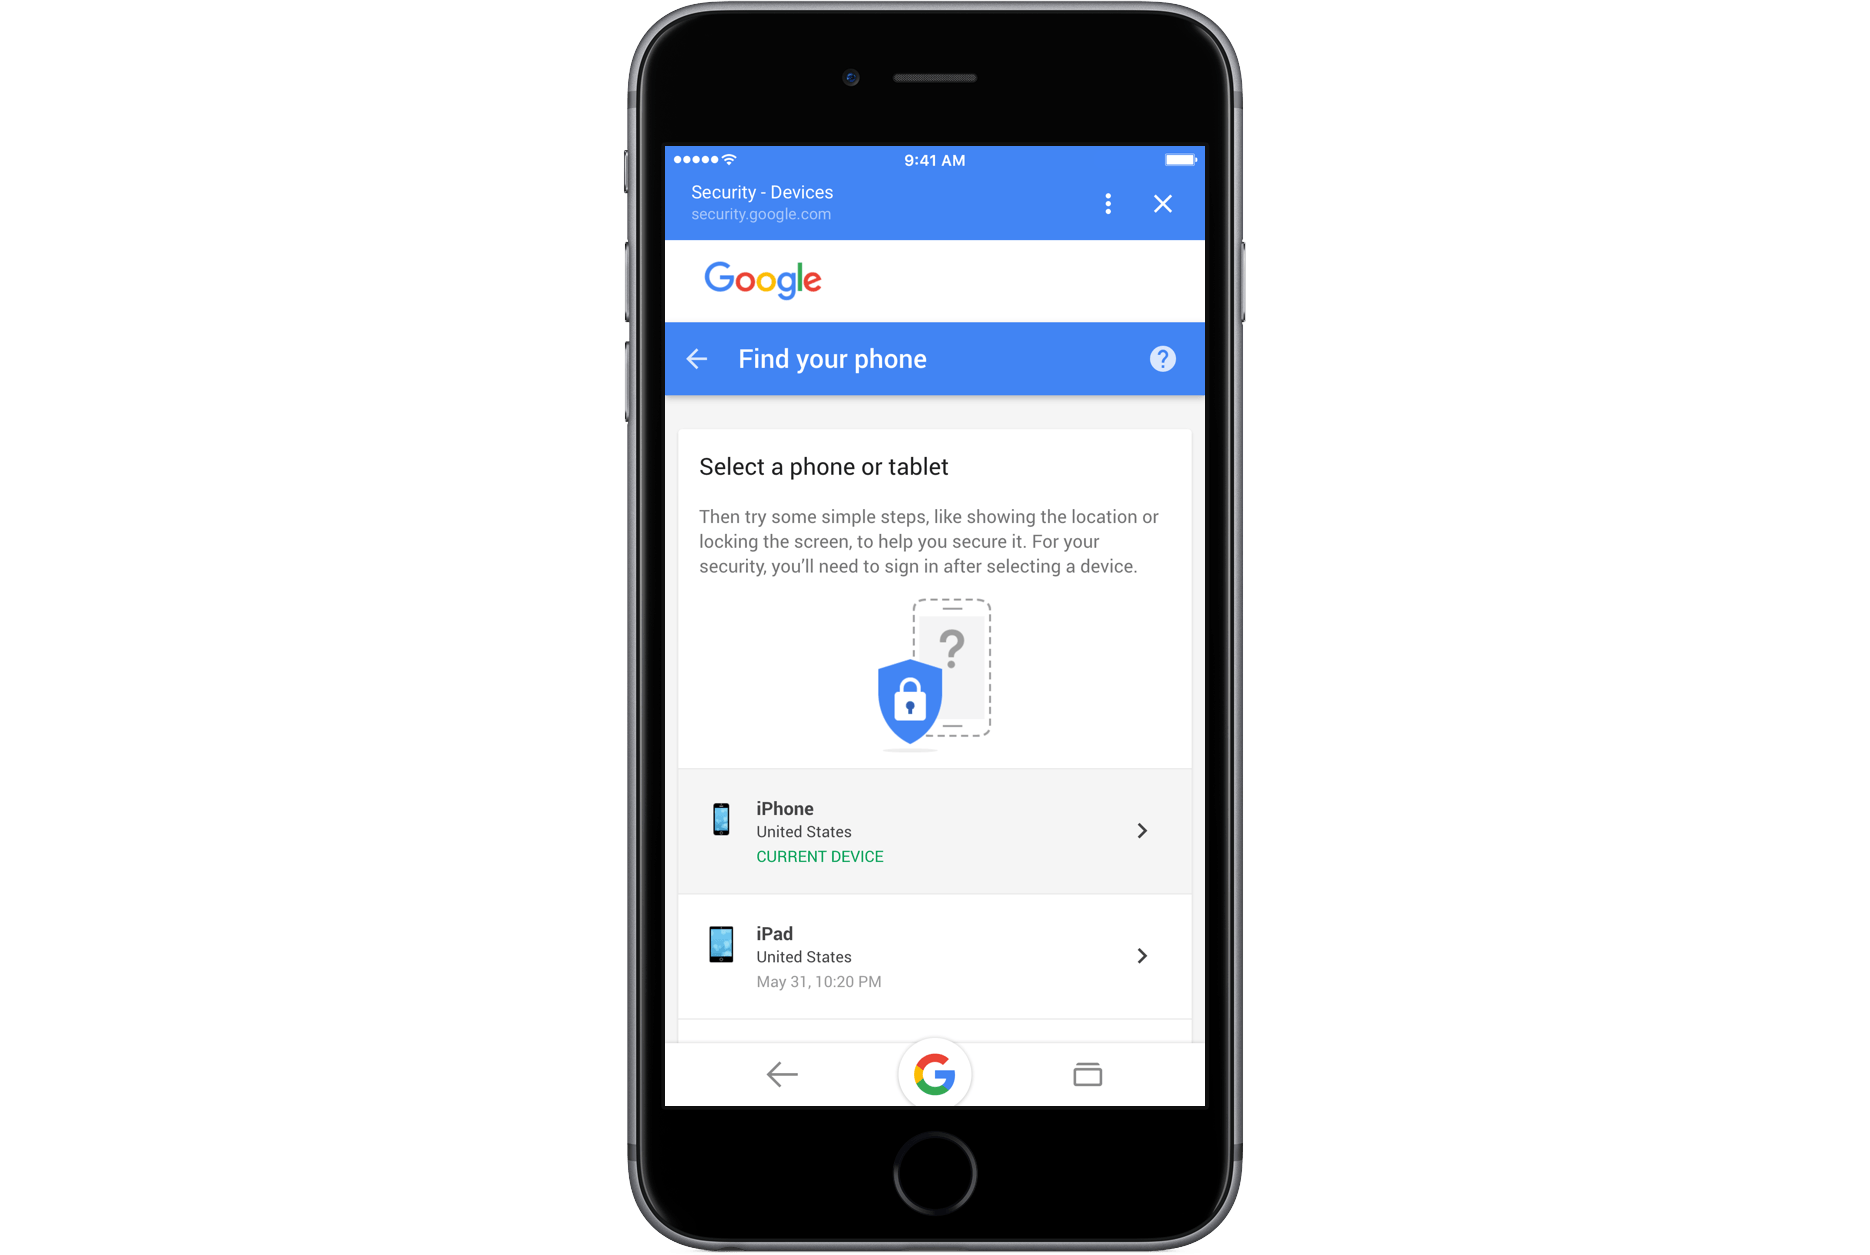 Google Adds Find Your Phone Feature For Ios Devices